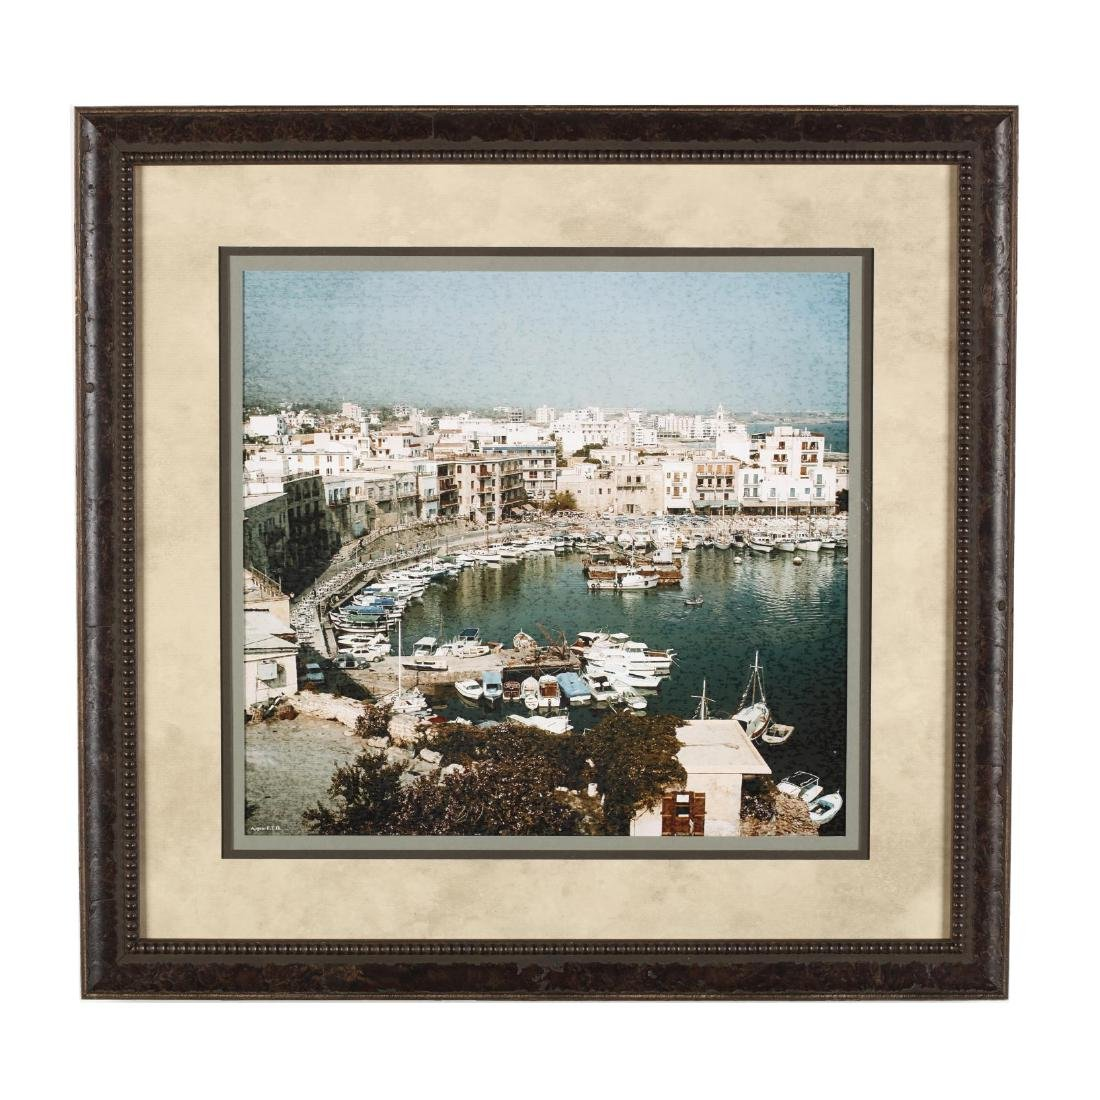 Two Framed Vintage Photographs of Cypriot Harbors - 2